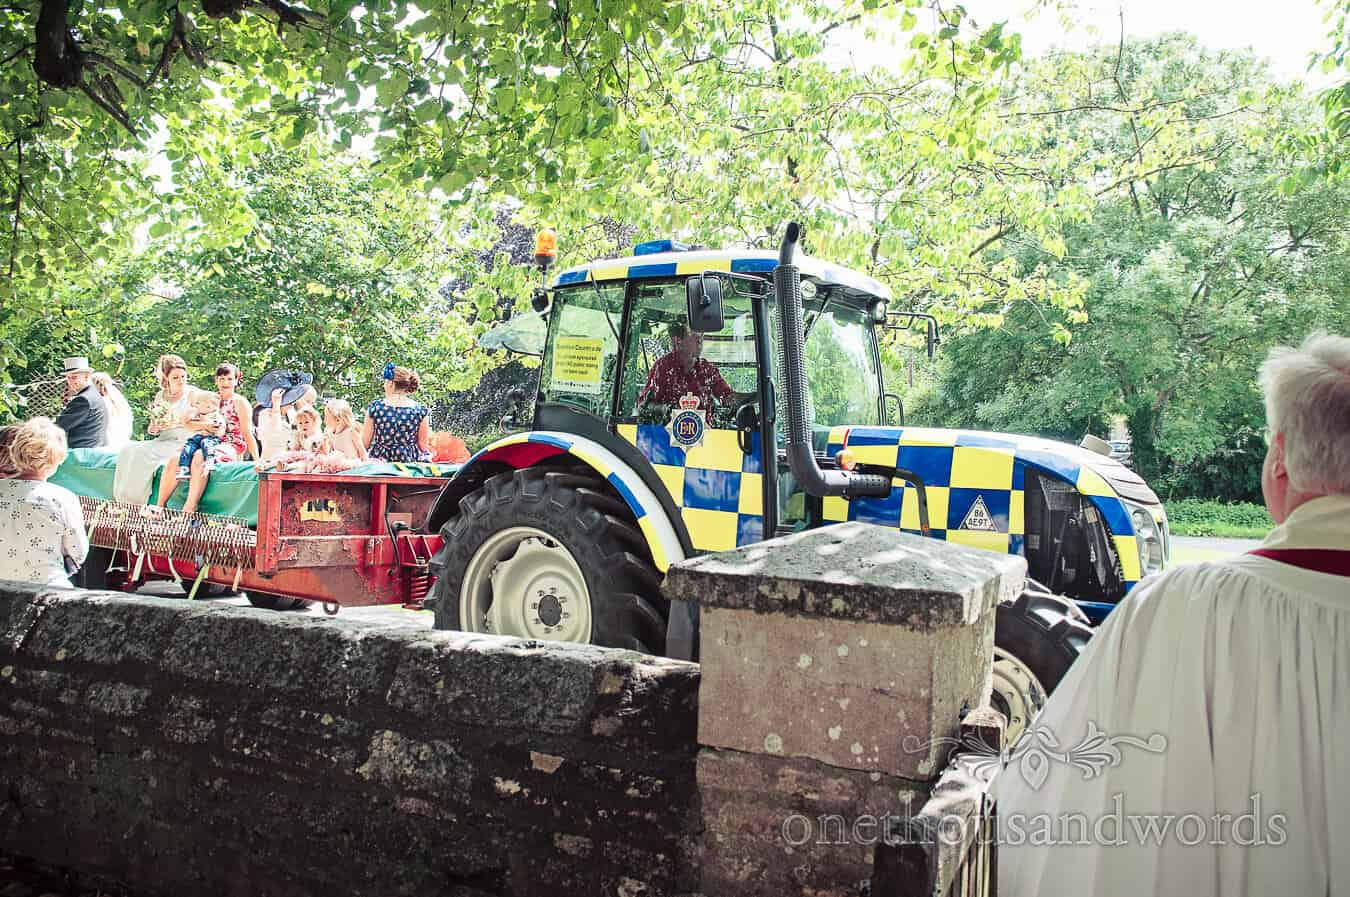 Police tractor pulls wedding guests to countryside church on trailer